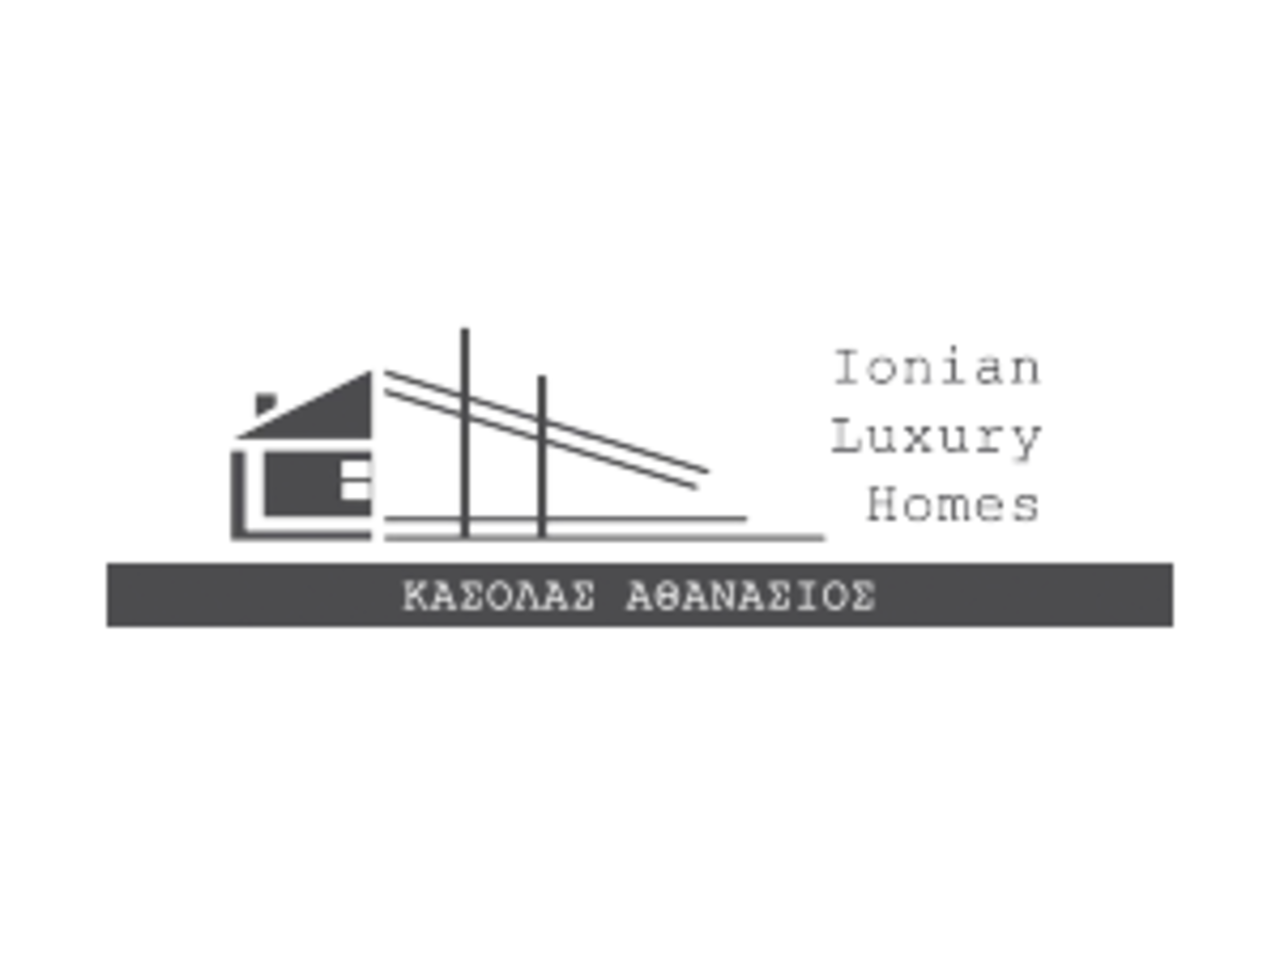 Ionian Luxury Homes